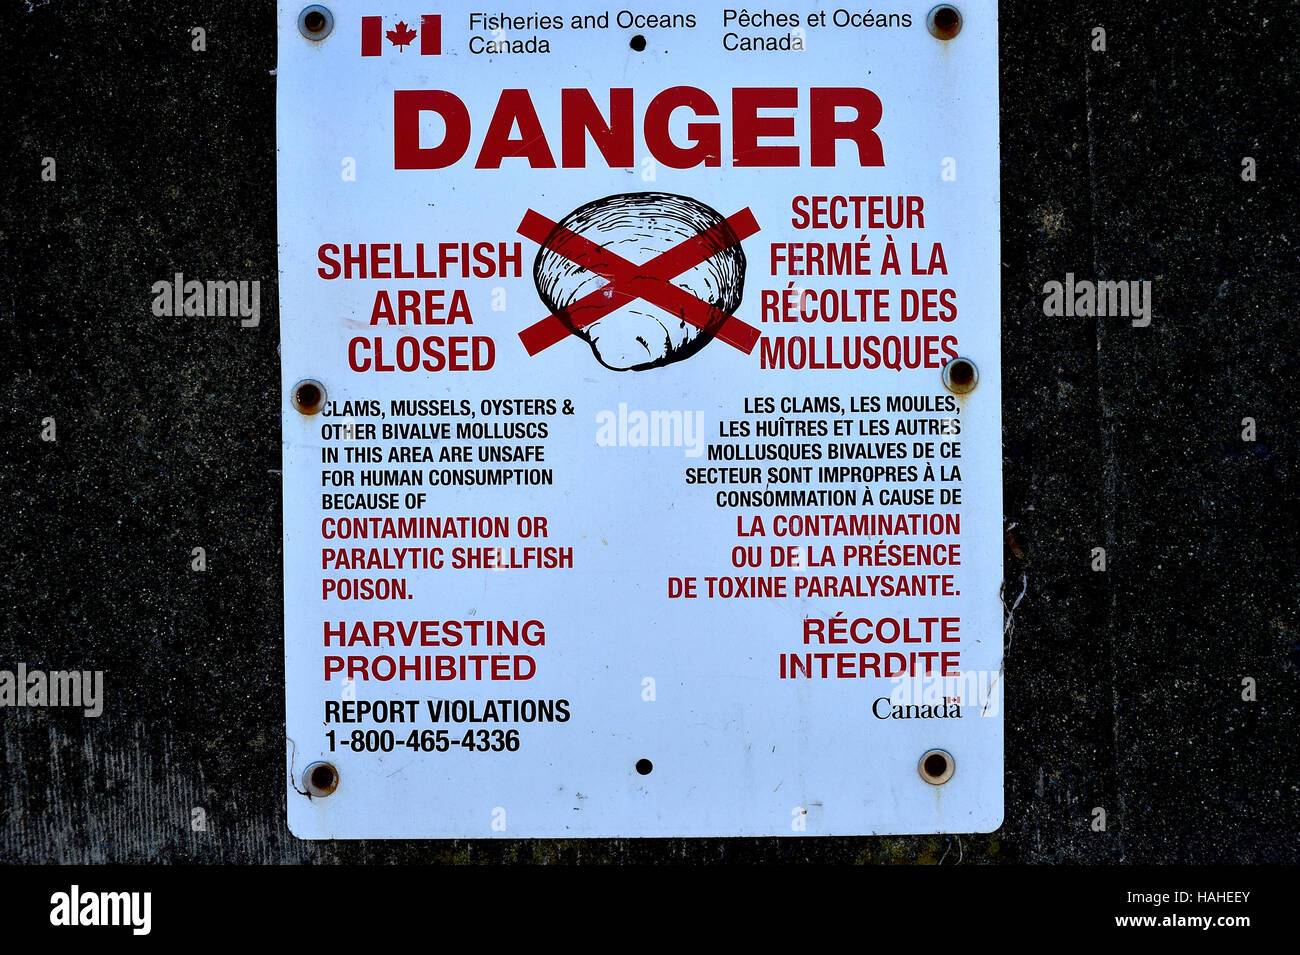 A Canadian Department of Fisheries warning sign - Stock Image